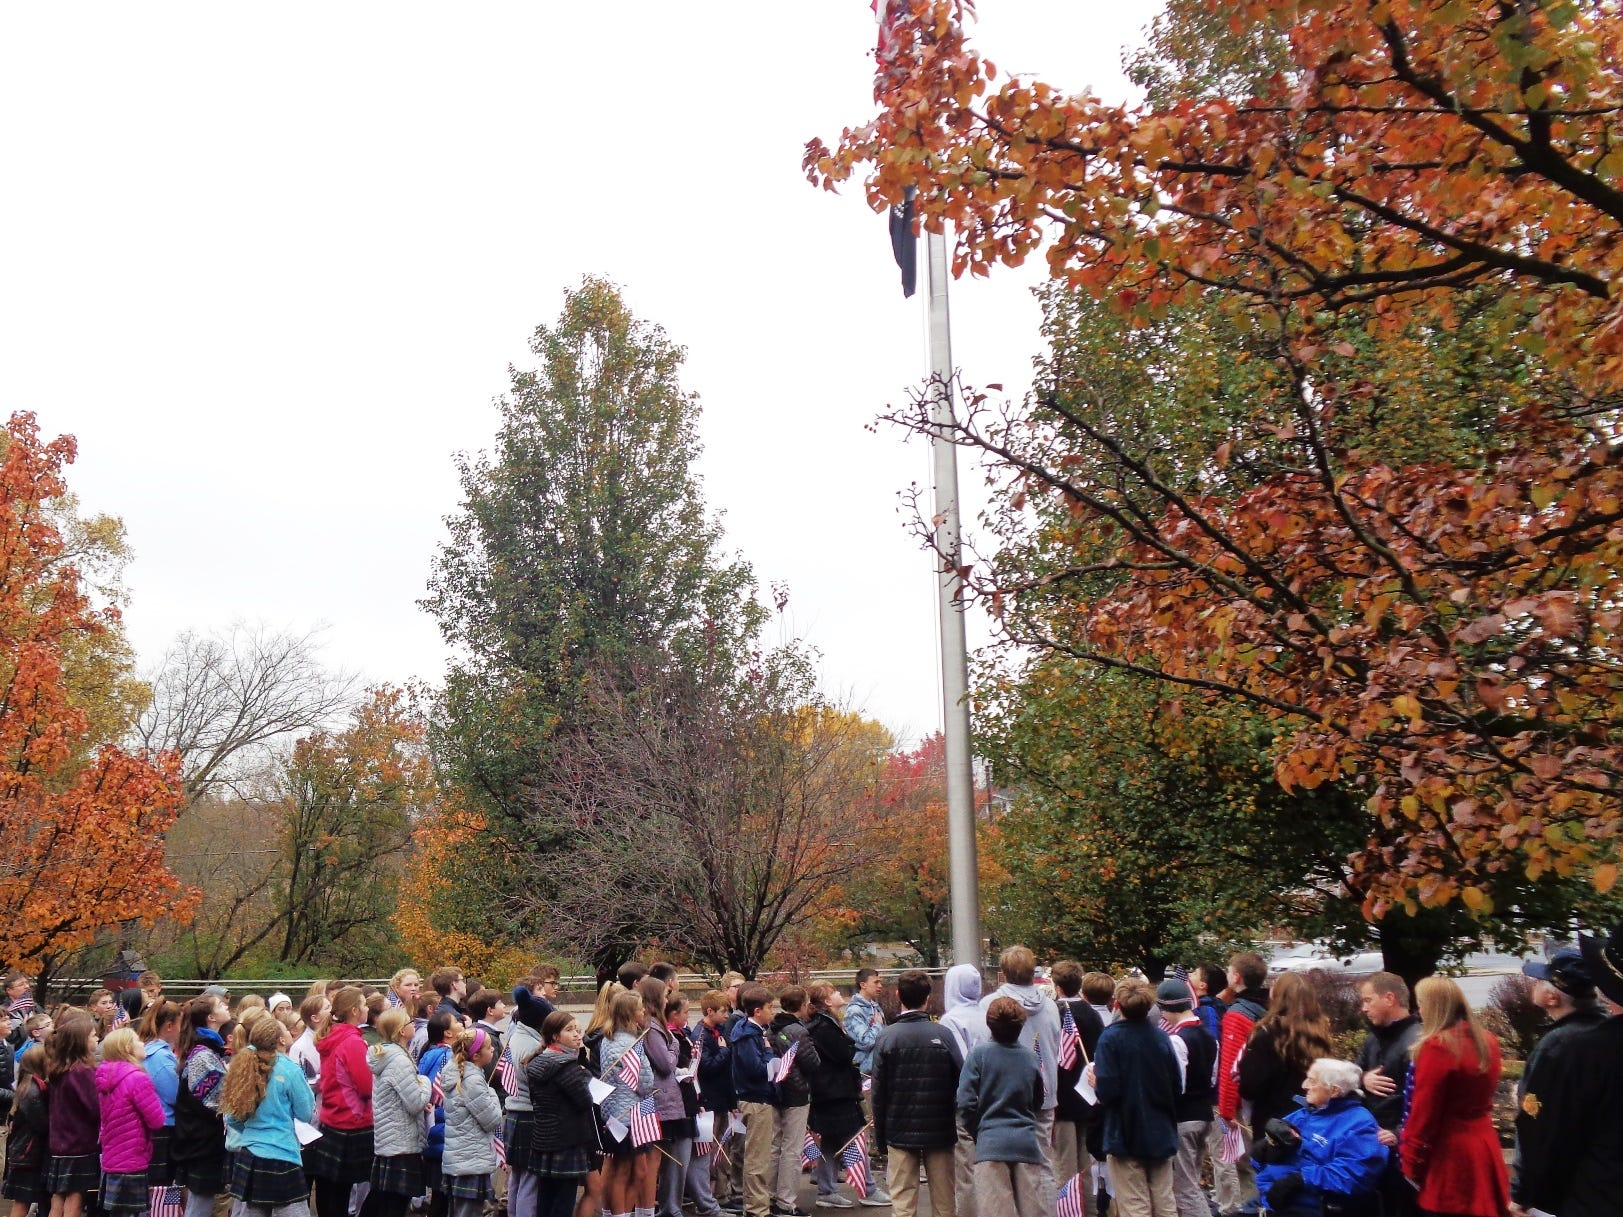 Students and the crowd stood at attention for the National Anthem at the start of the Veterans Day Celebration at Loveland Veteran's Memorial Park Friday, Nov. 9, 2018.